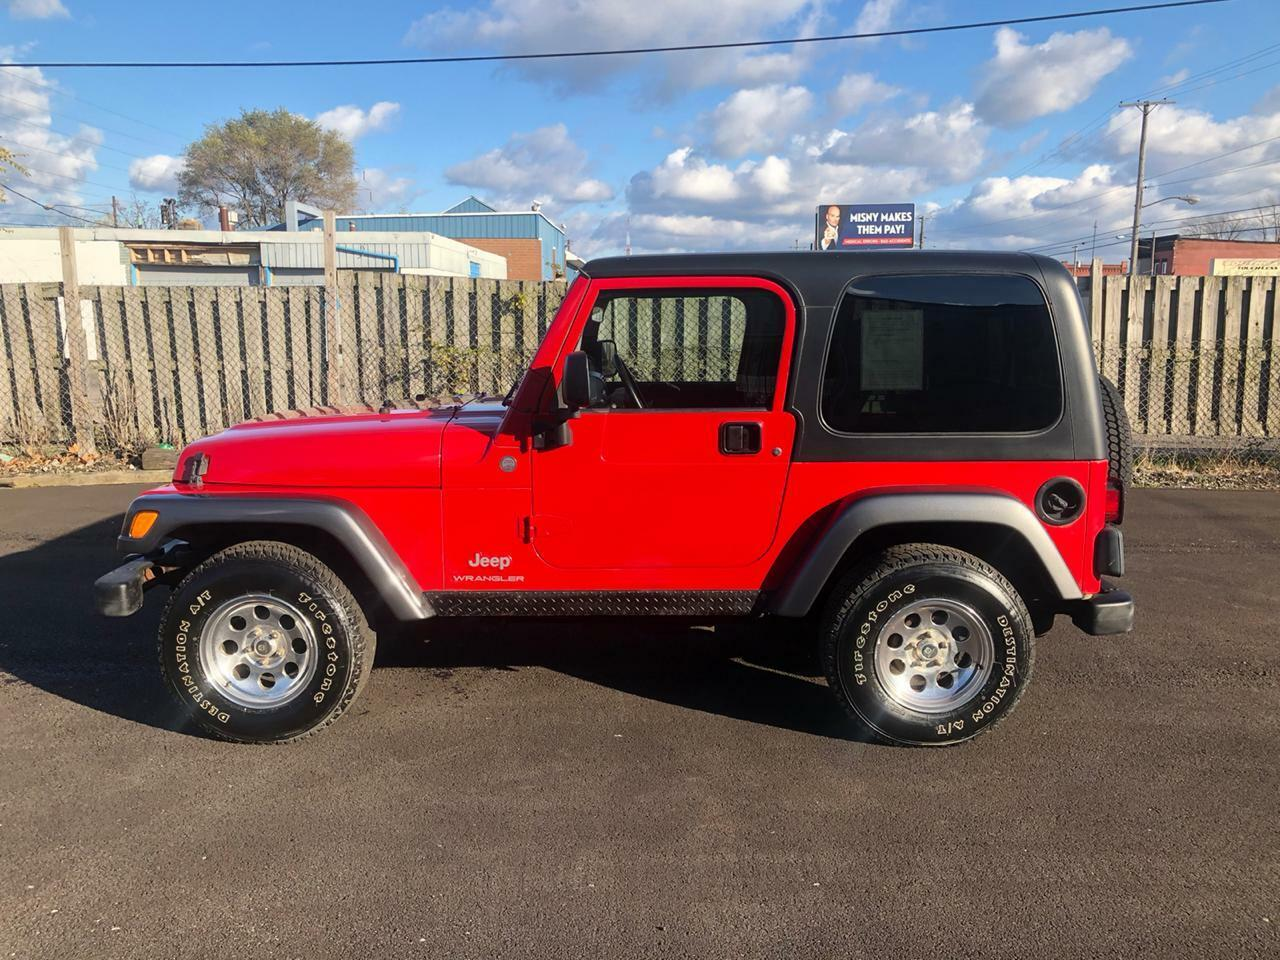 2004 JEEP WRANGLER 47K MILES EXTRA CLEAN!! TRAIL RATED ROCKY MOUNTAIN EDITION!